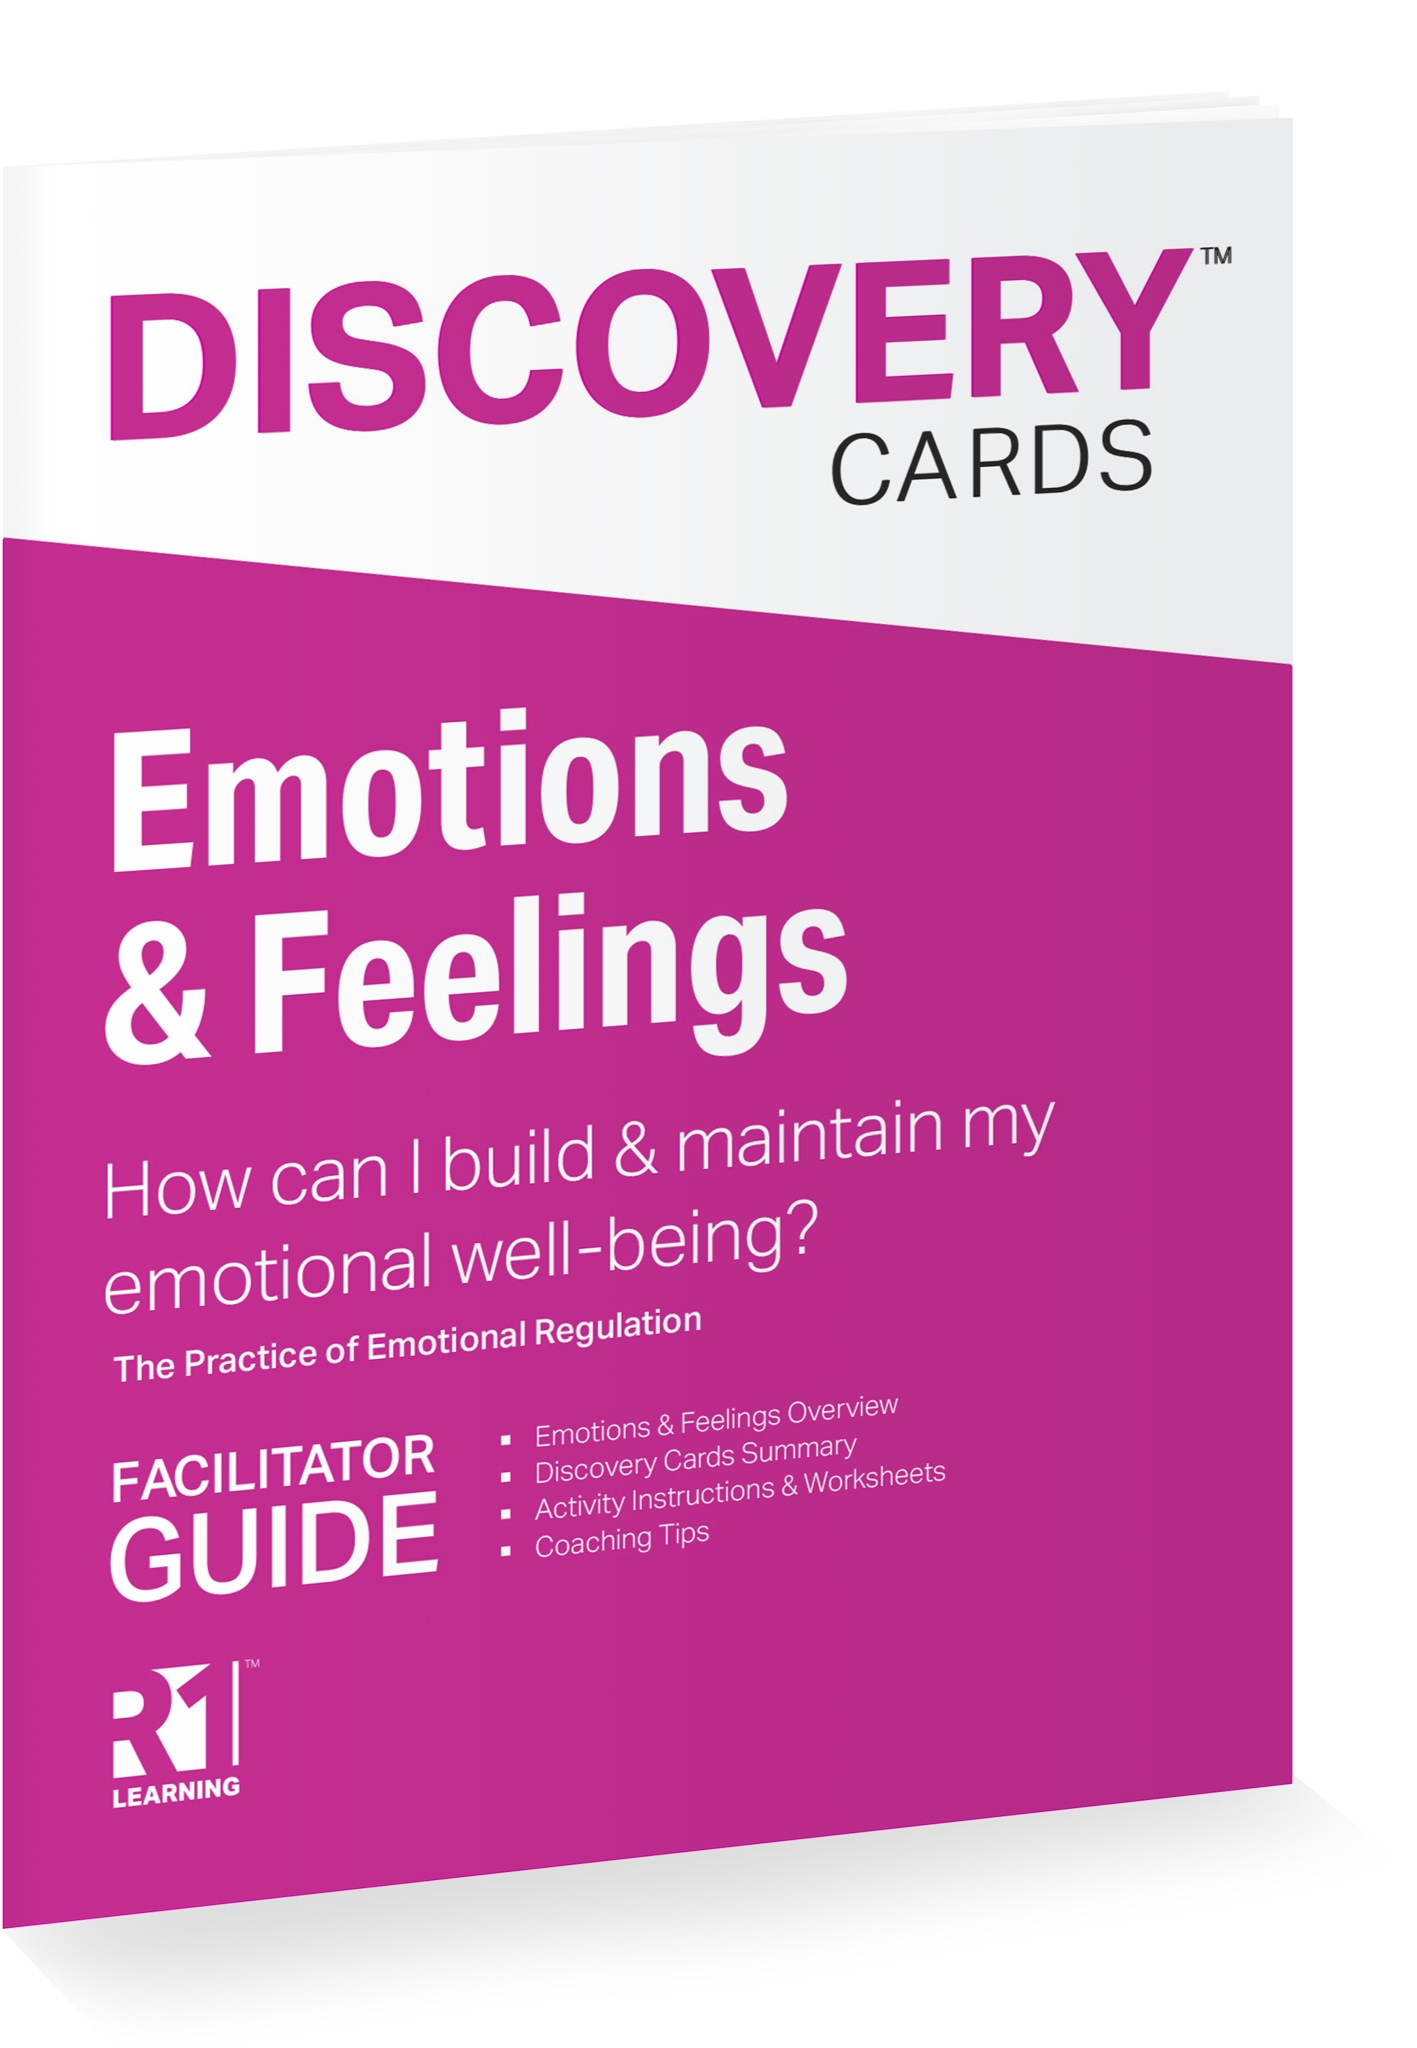 3-emotionsandfeelings-guide.jpg